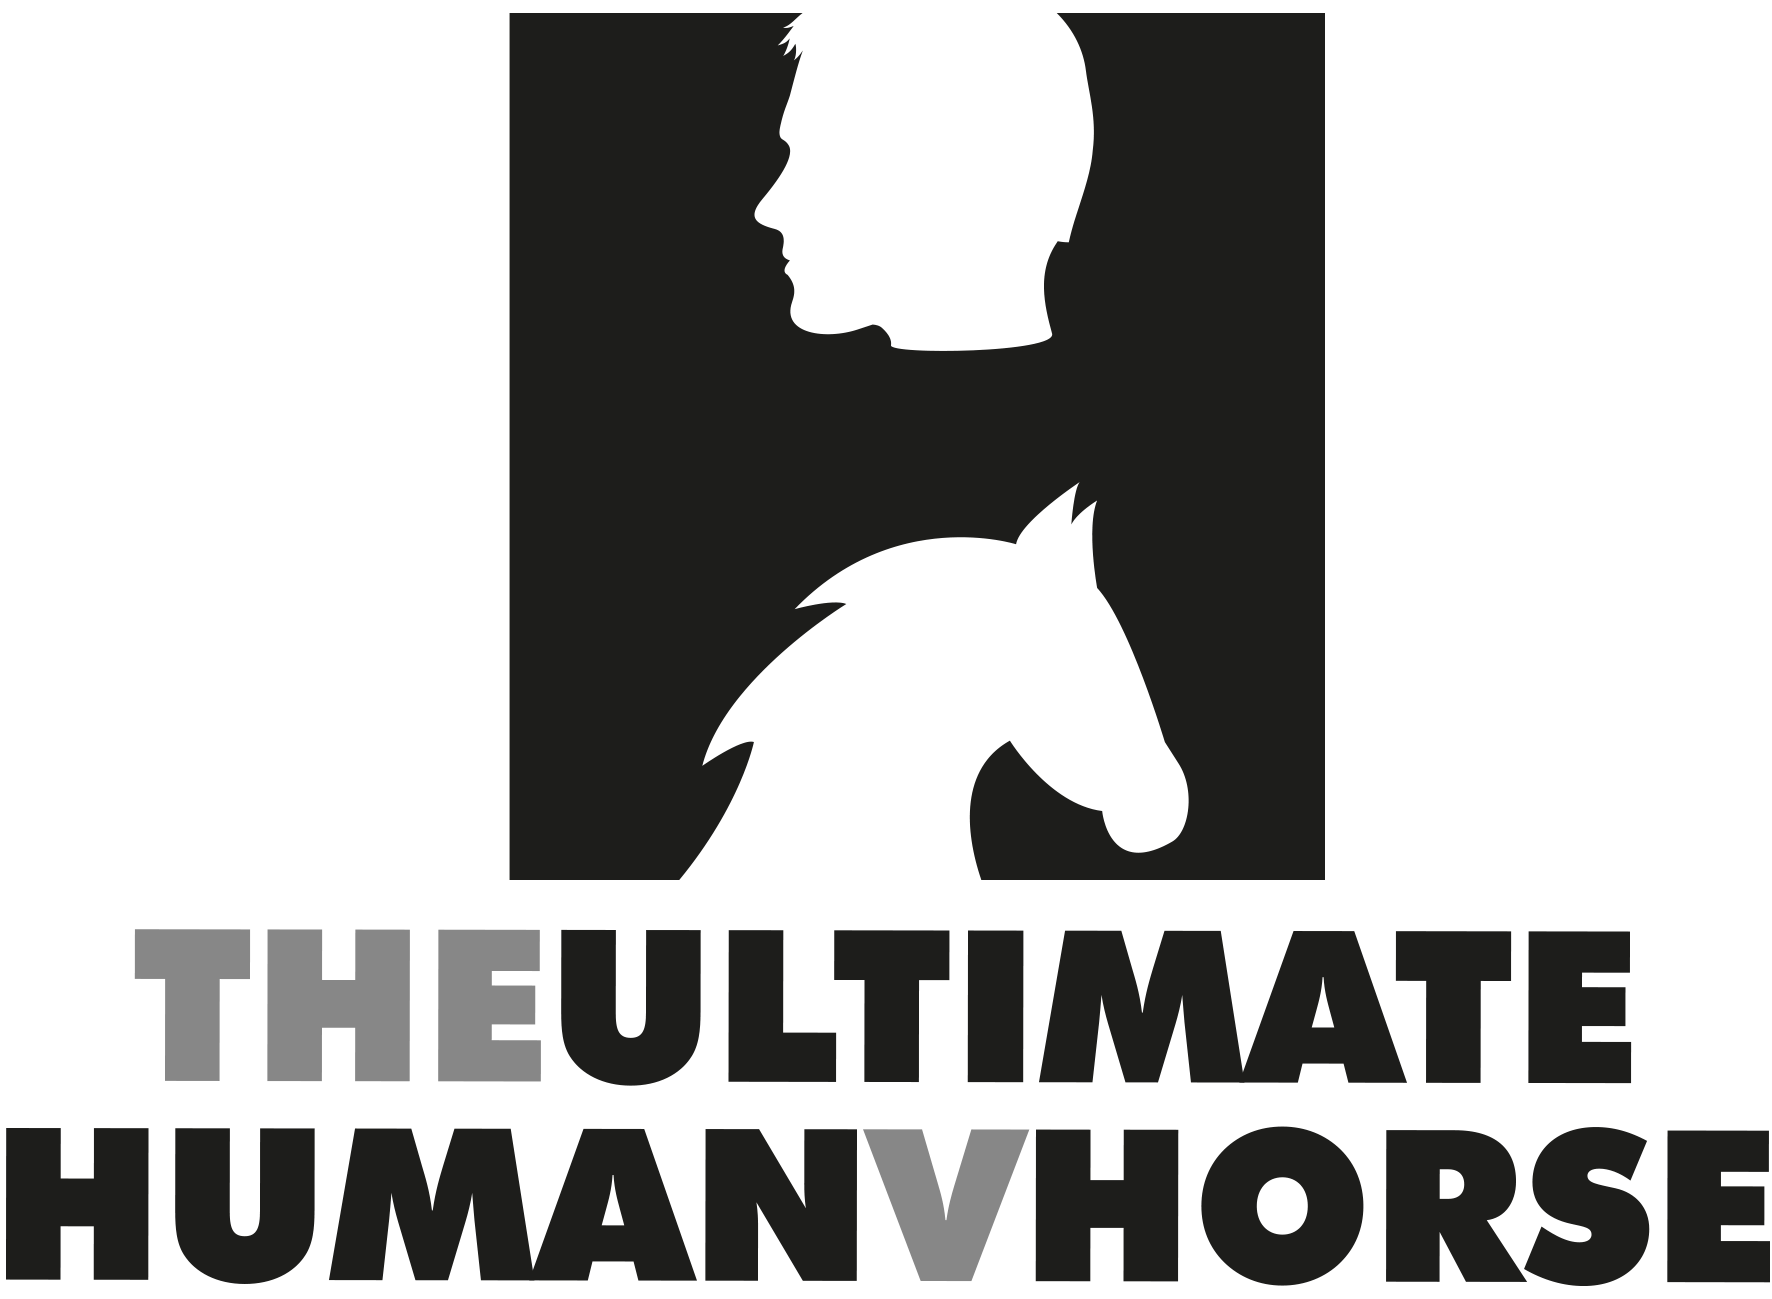 The Ultimate Human v Horse